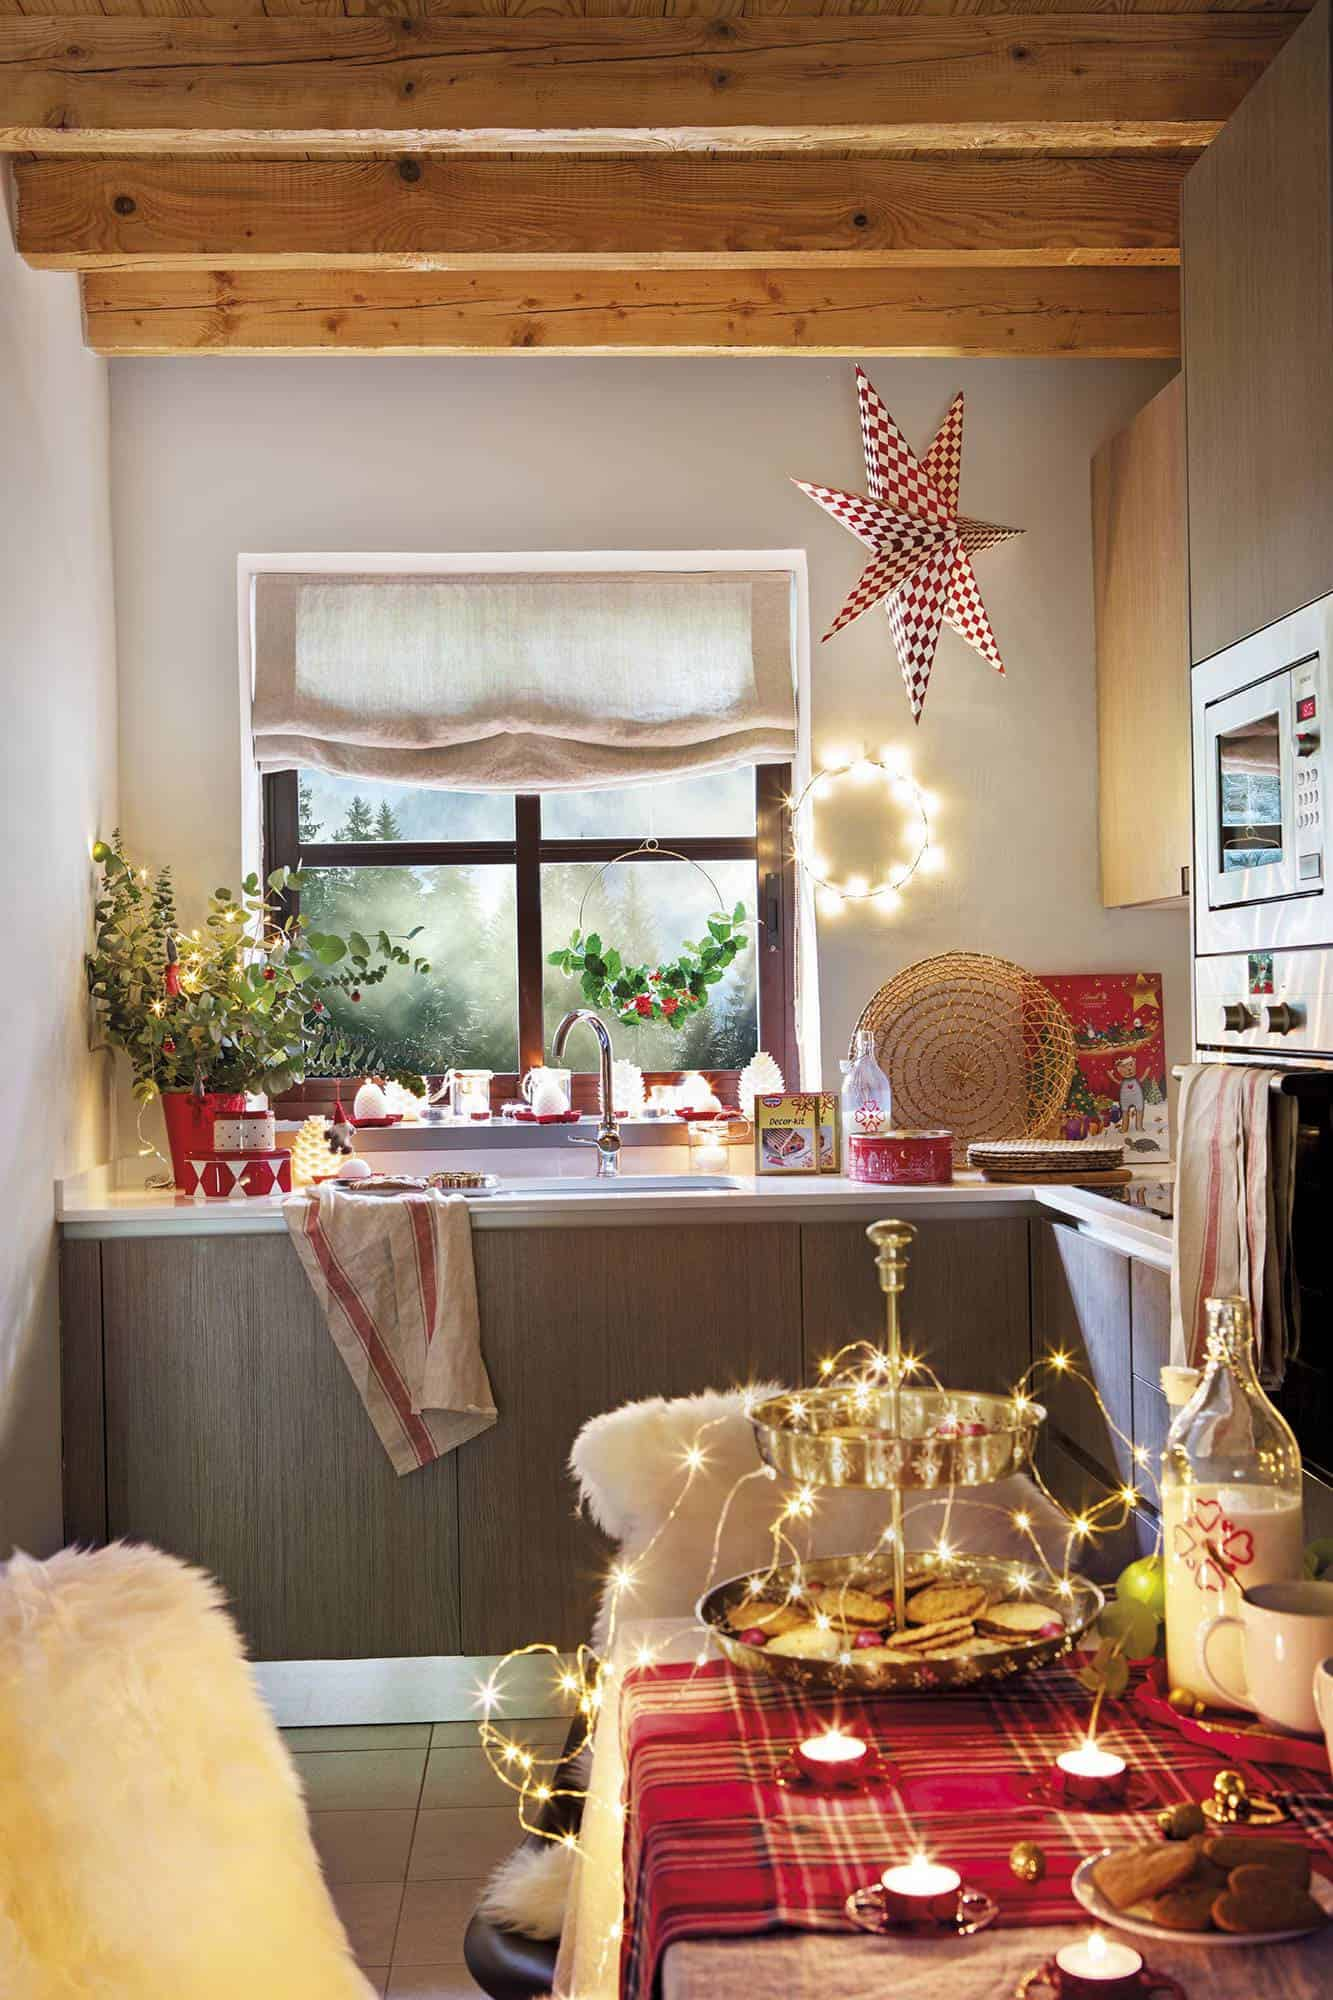 rustic-kitchen-christmas-decorations